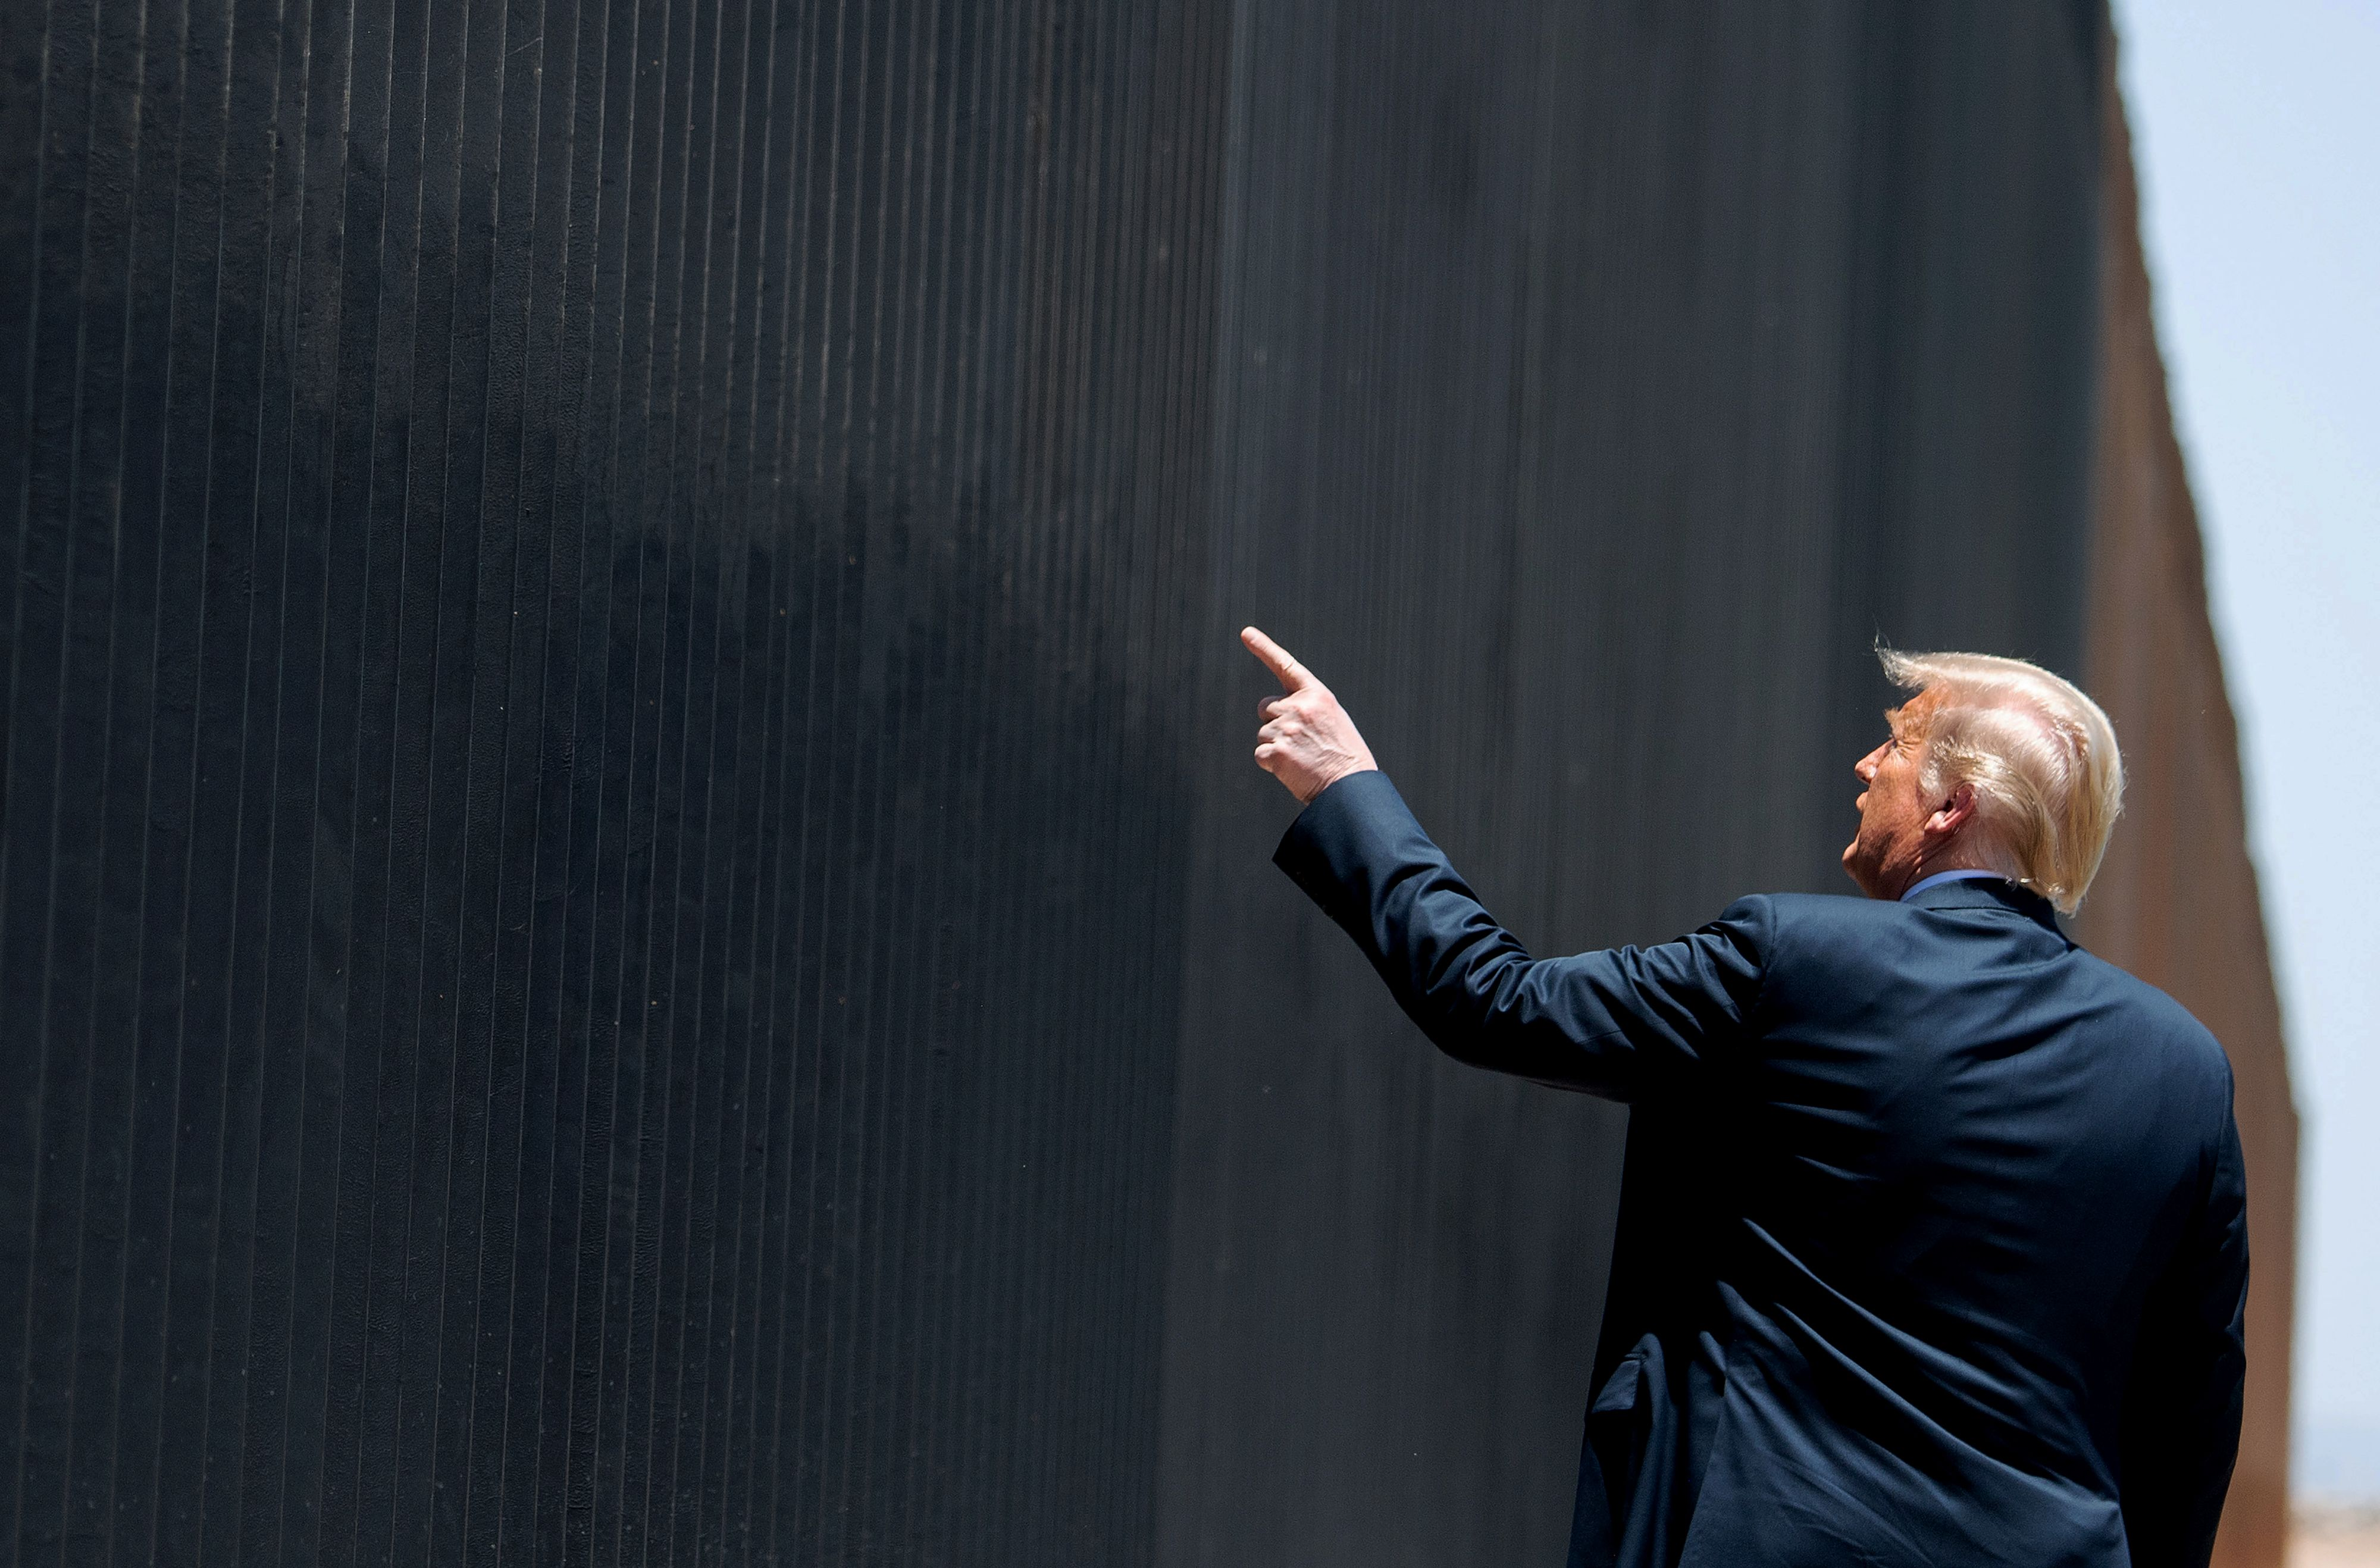 US President Donald Trump participates in a ceremony commemorating the 200th mile of border wall at the international border with Mexico in San Luis, Arizona, June 23, 2020. (Photo by SAUL LOEB / AFP) (Photo by SAUL LOEB/AFP via Getty Images)